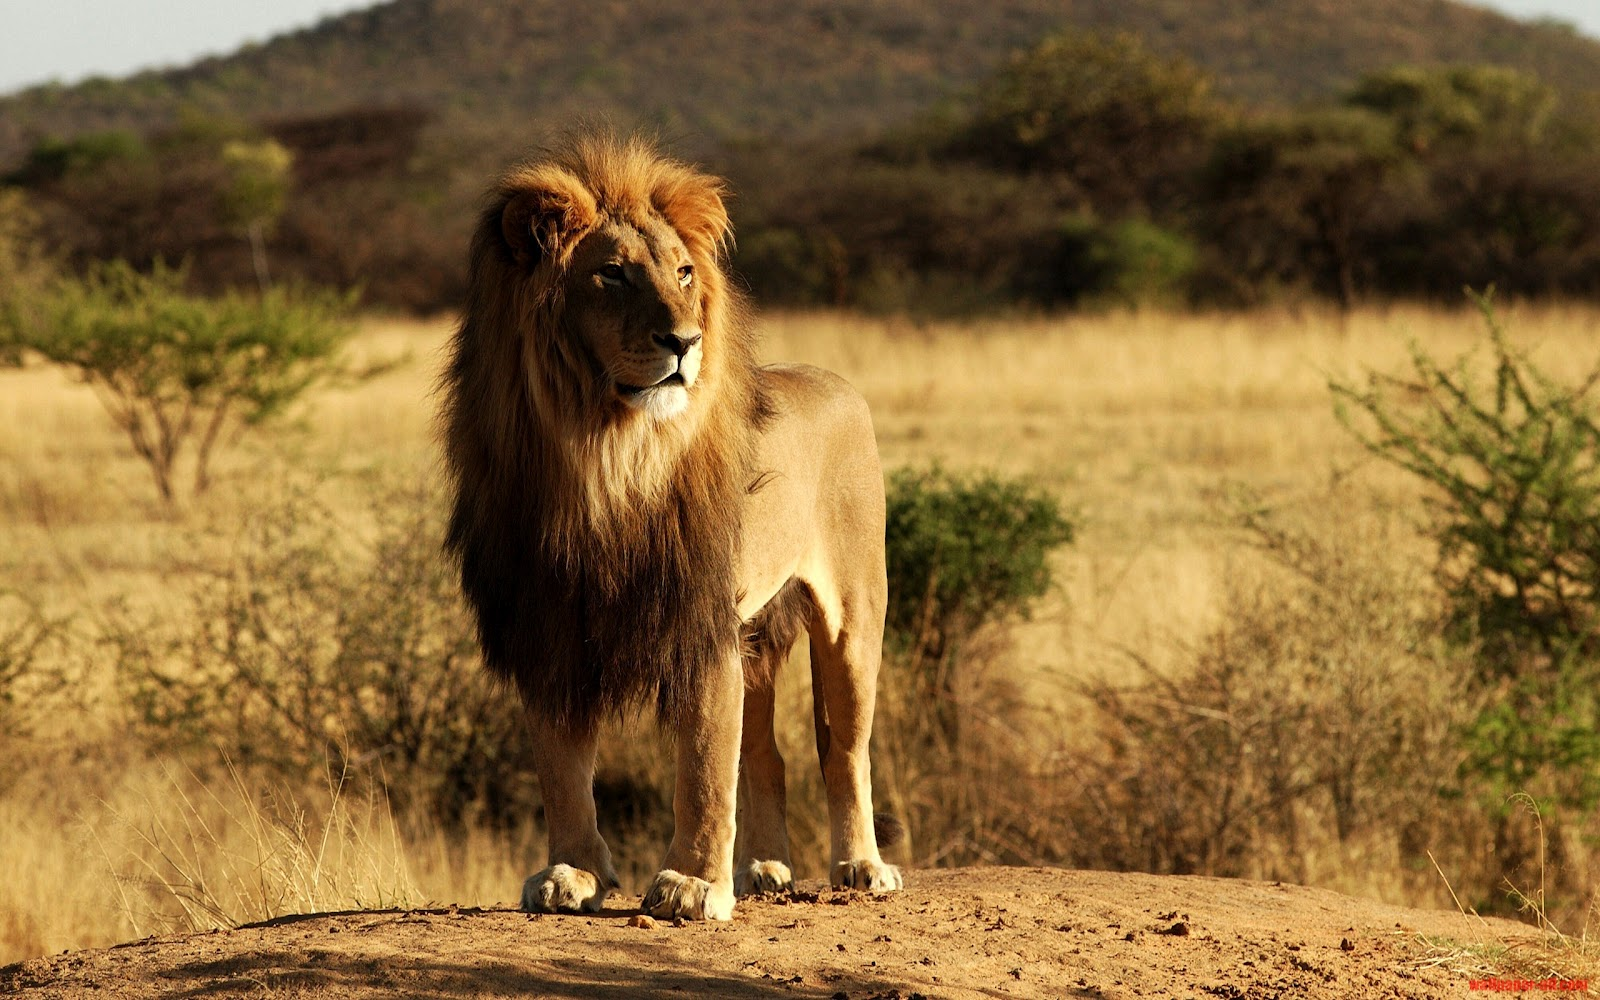 Cute Funny Animals Wallpapers 26 Beautiful Amp Amazing Lion The King Of Forest Wallpapers Hd